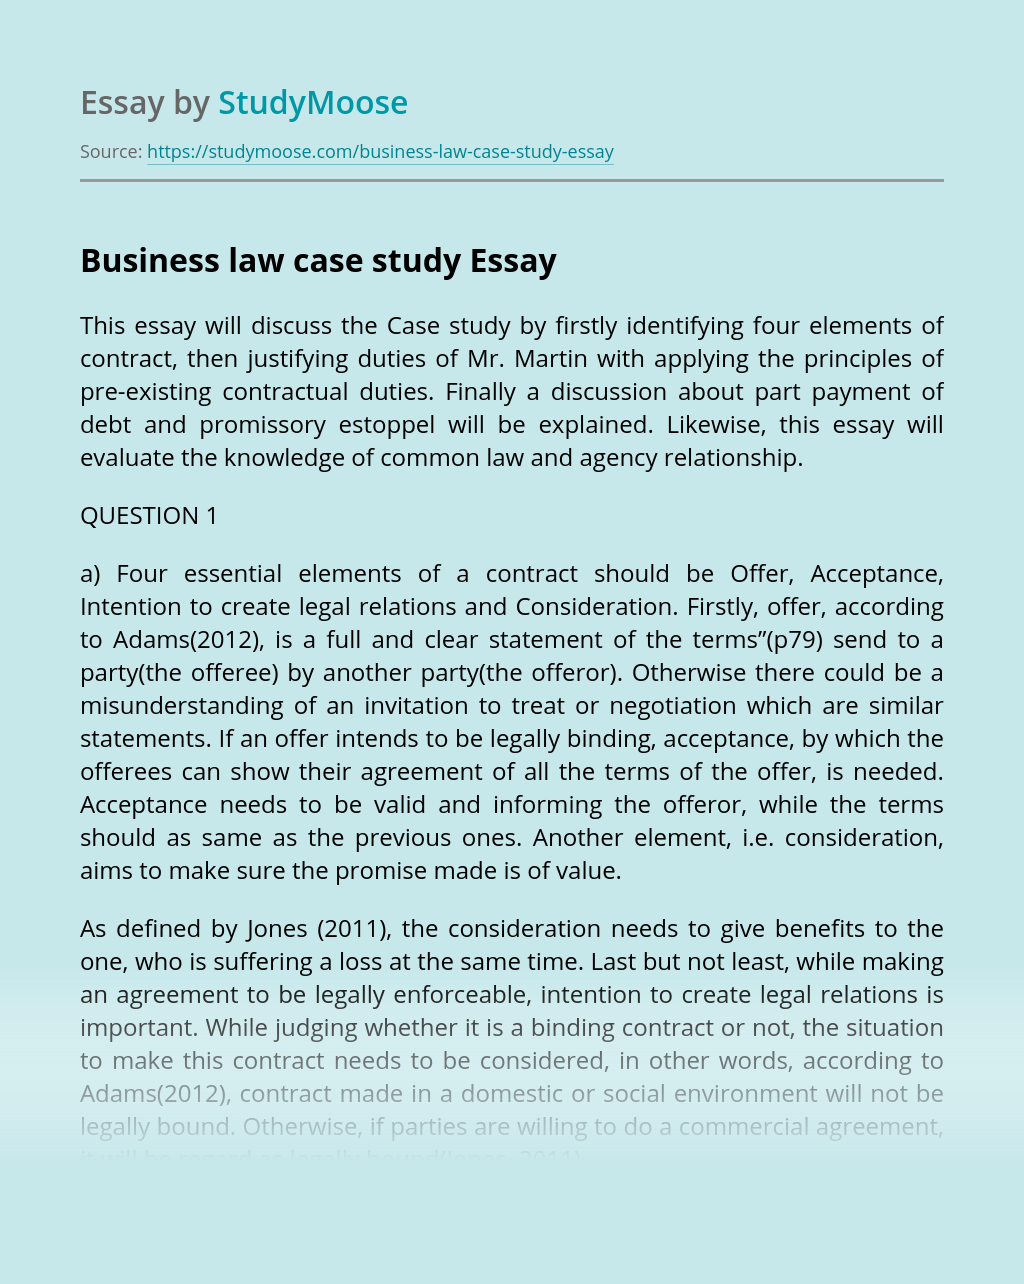 Business law case study